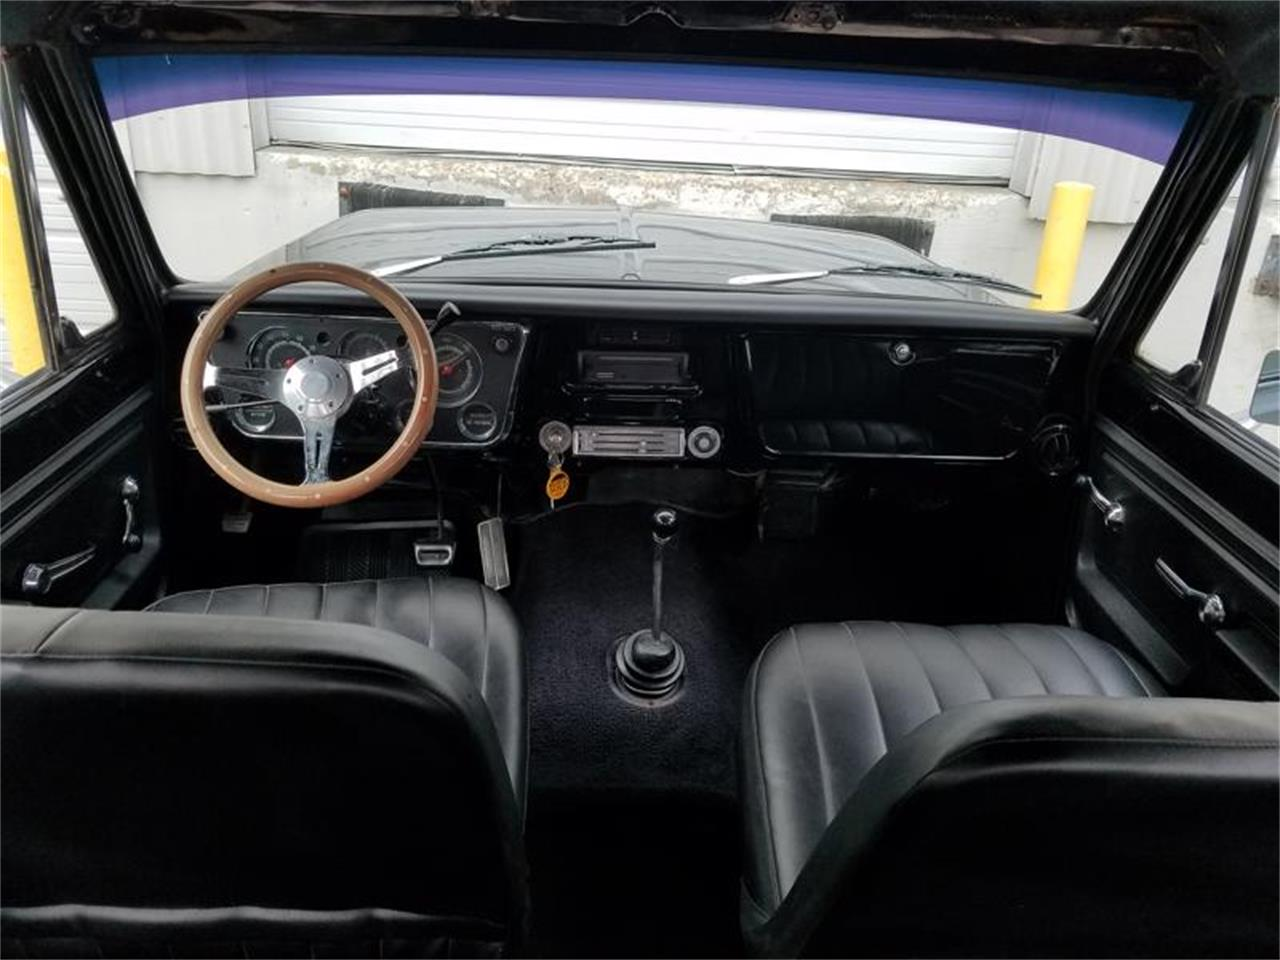 Large Picture of '72 GMC Jimmy located in Texas - $26,500.00 - OEYL